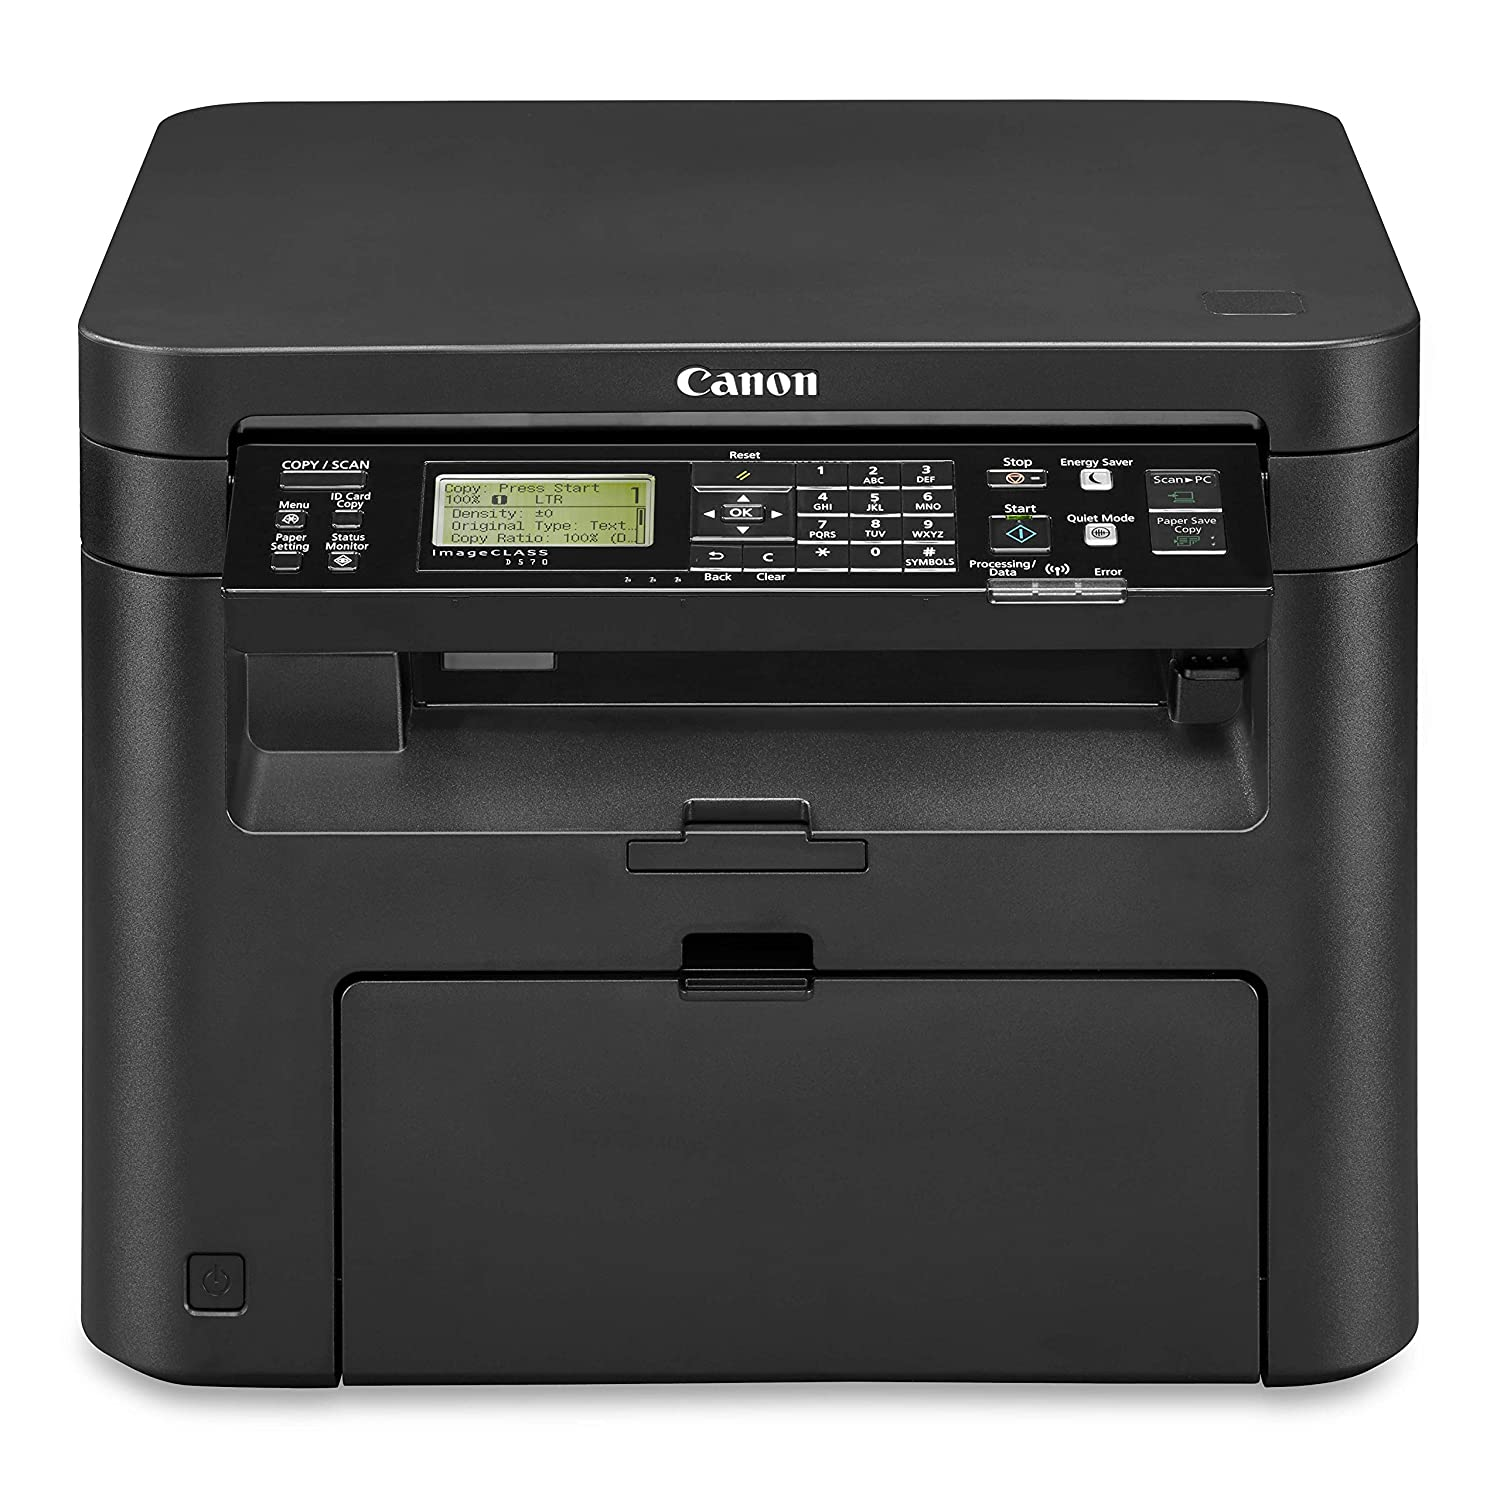 Canon imageCLASS D570 Monochrome Laser Printer with Scanner and Copier